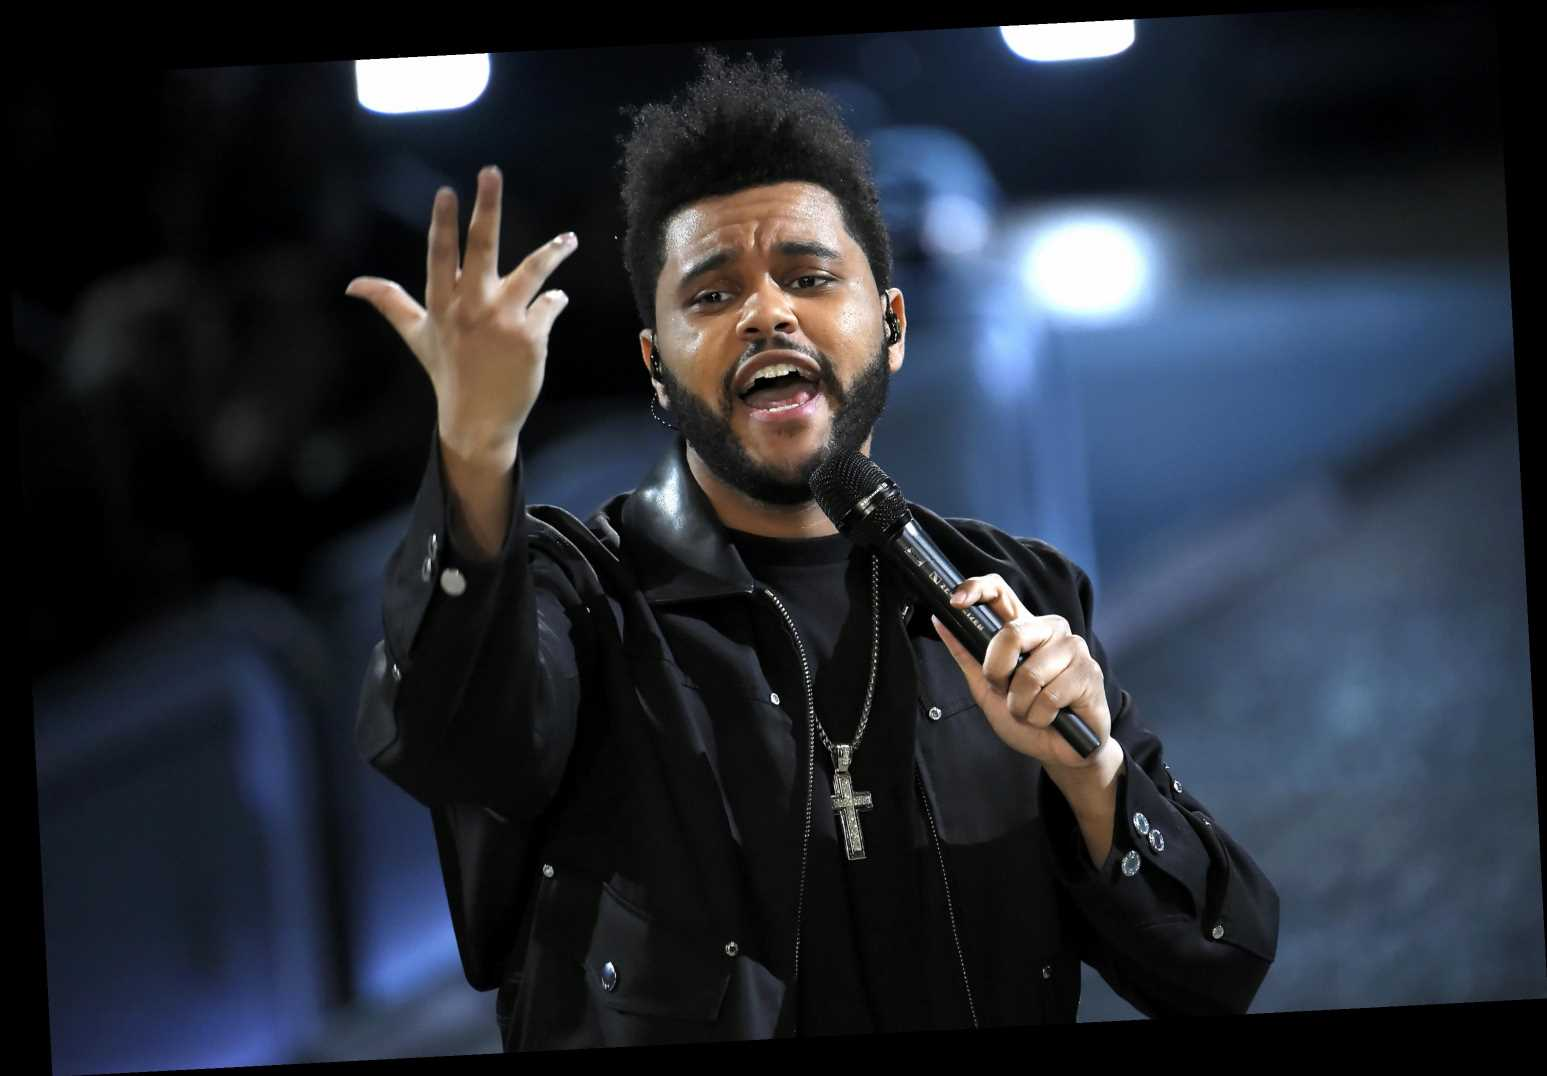 What is The Weeknd wearing at the Super Bowl halftime show?